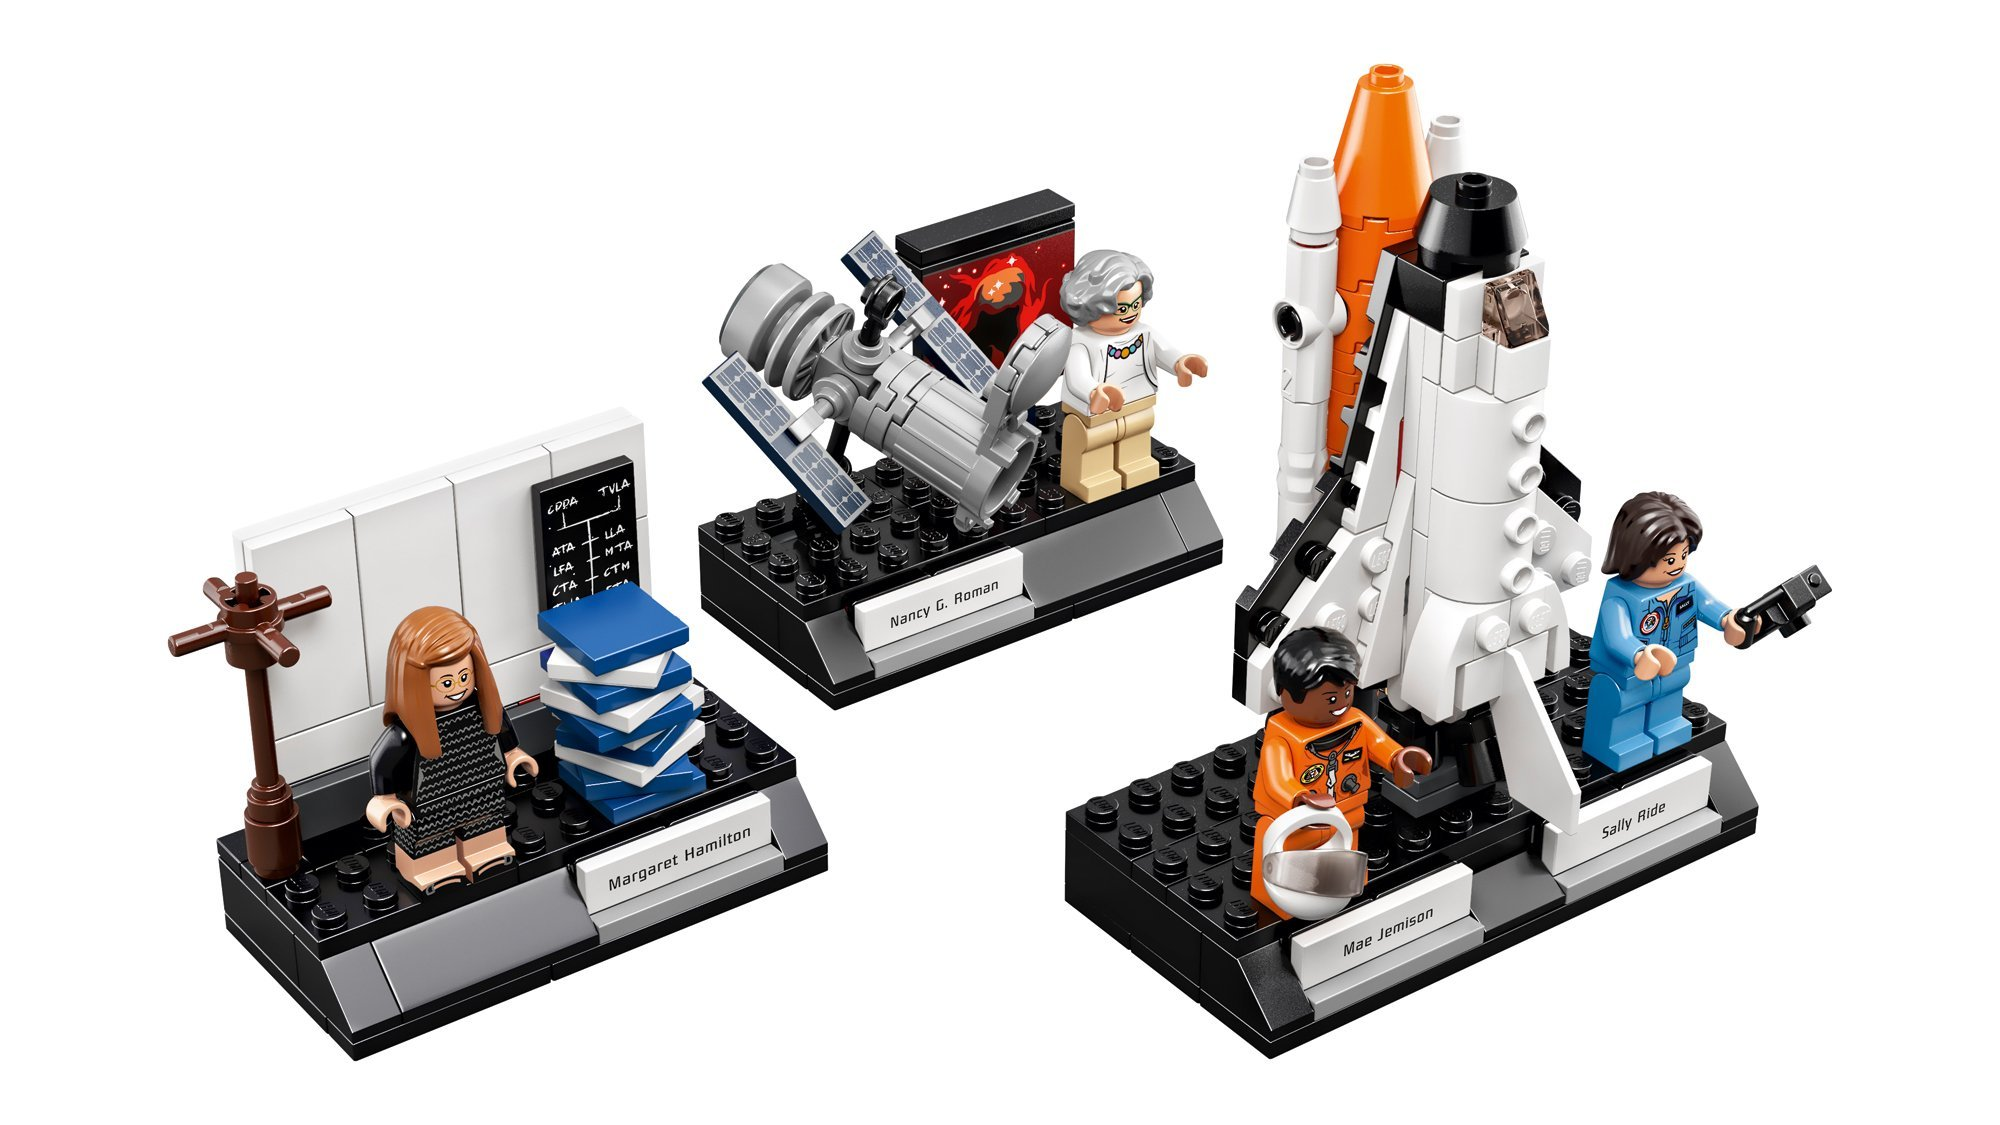 The set features four women from the U.S. space program. (Credit: LEGO)